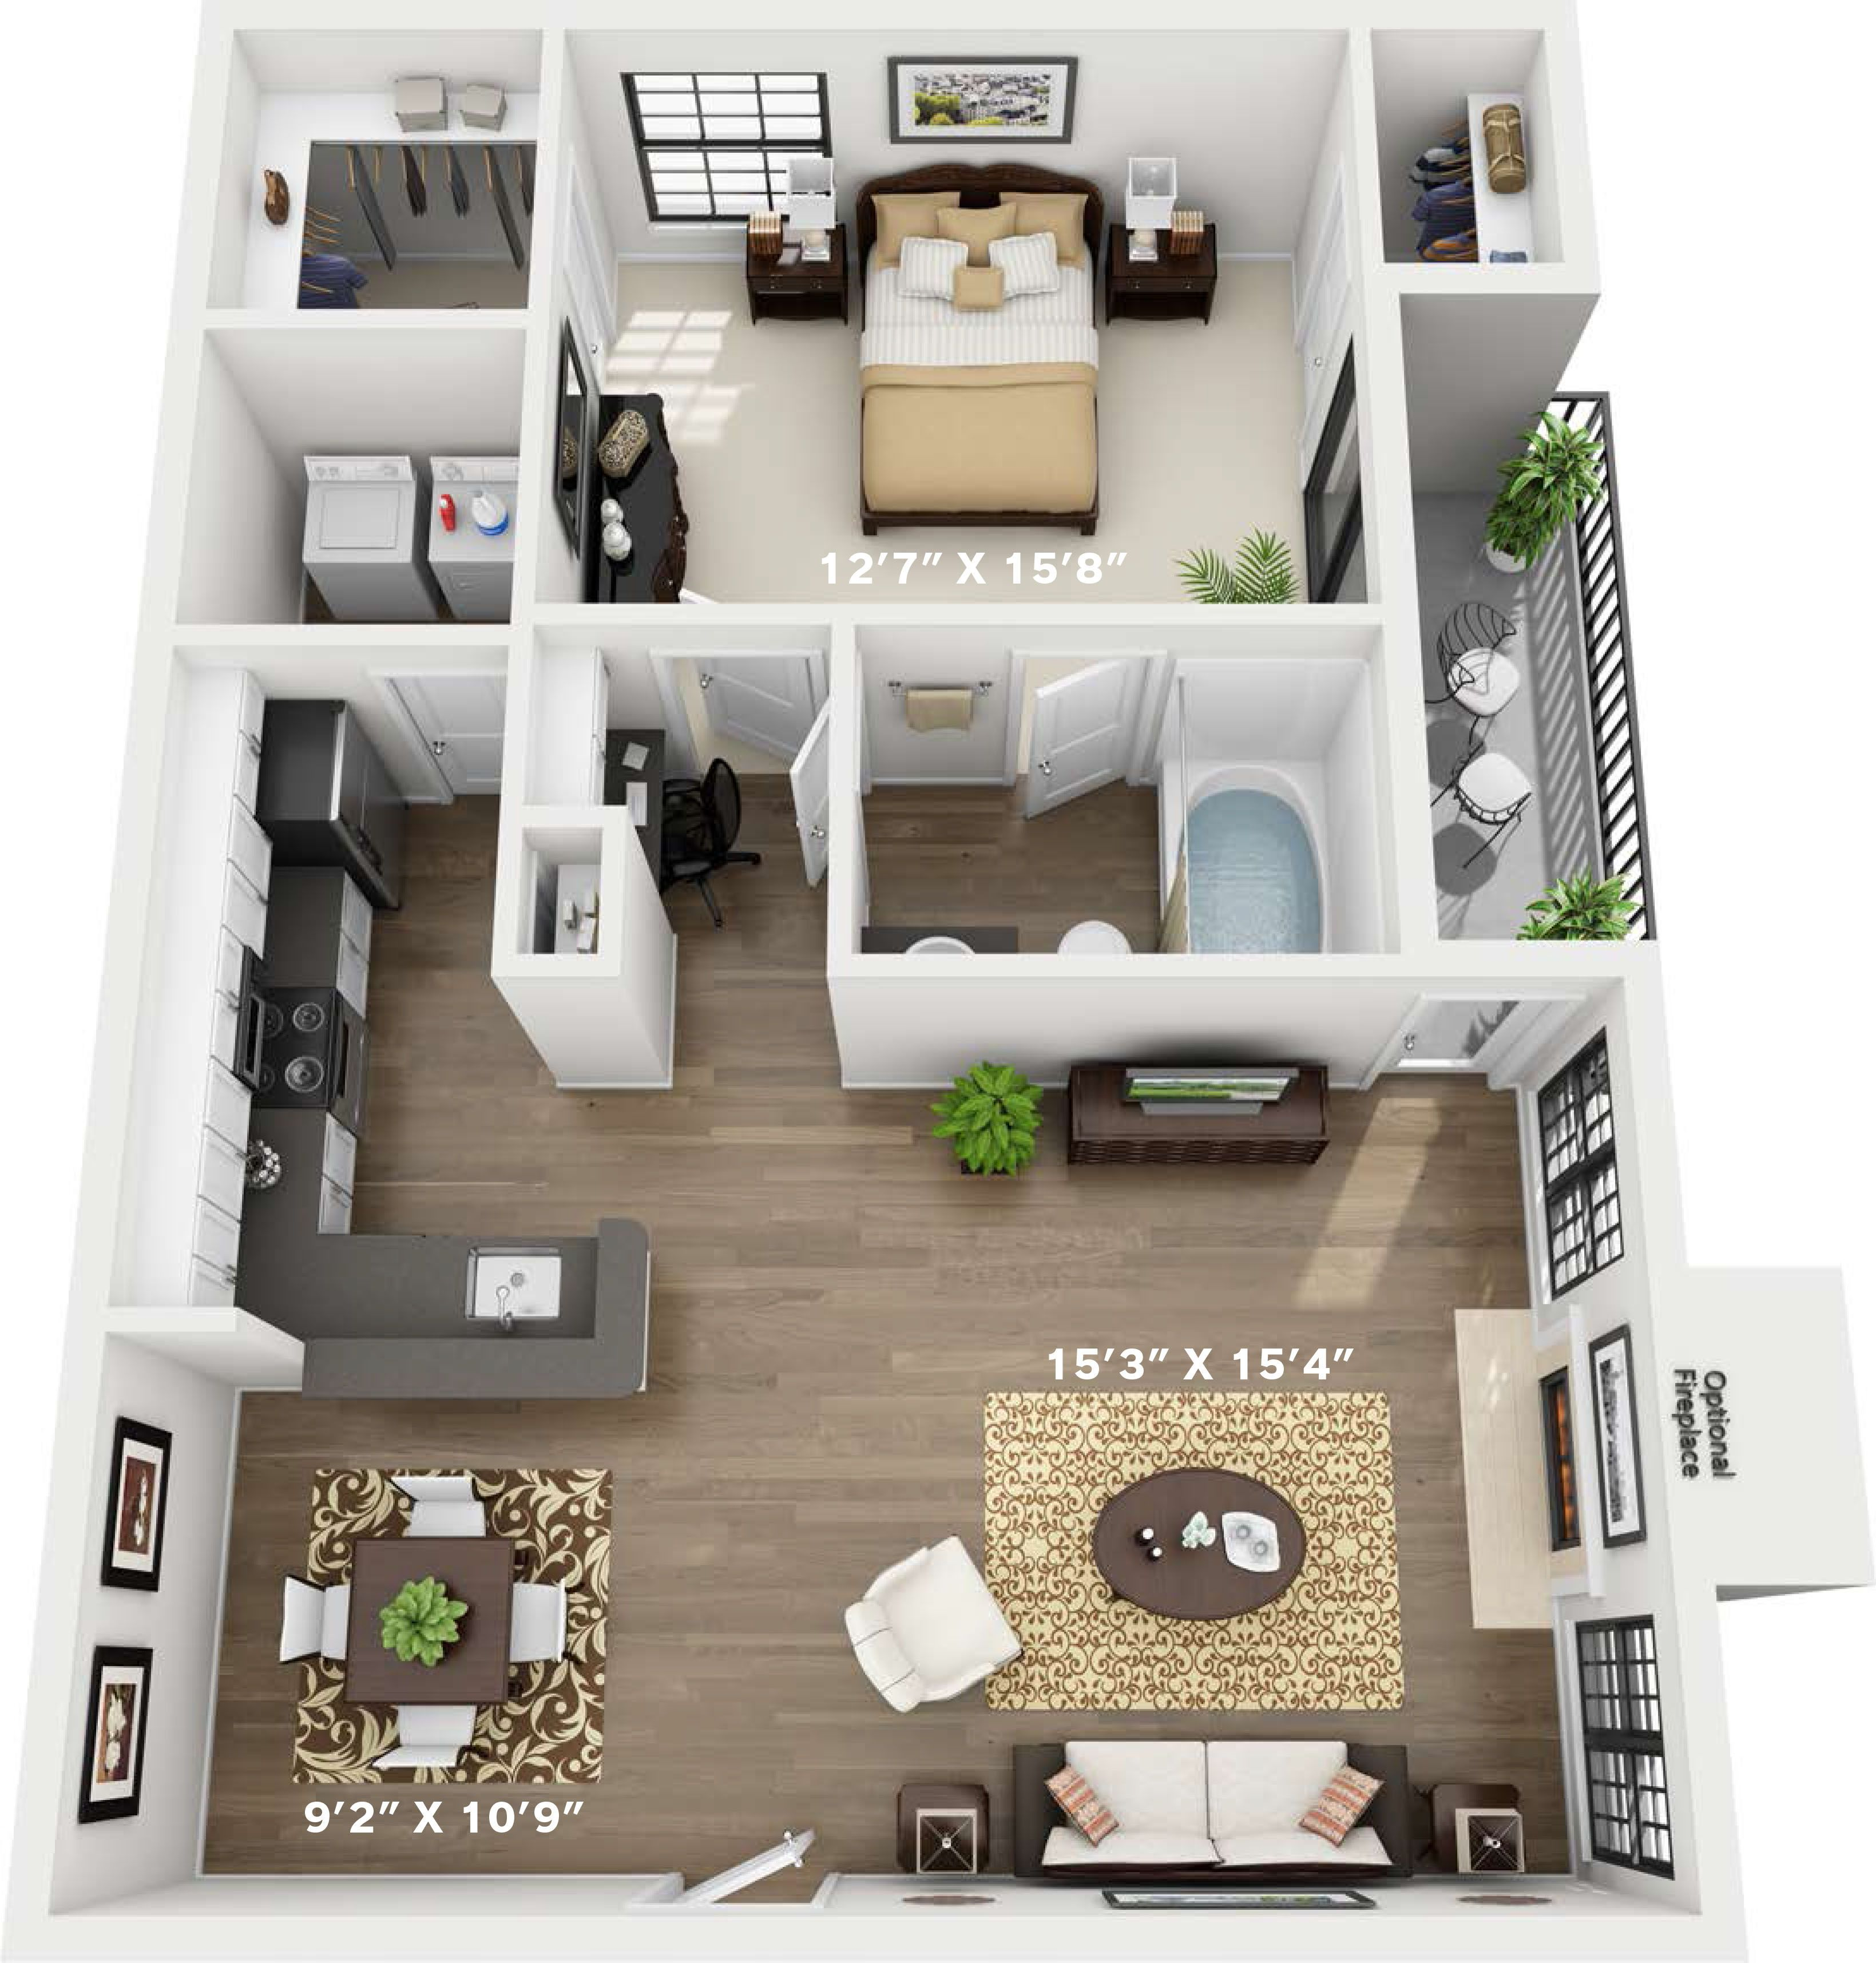 Can You Get An Apartment At 18 In Texas 1 2 3 And 4 Bedroom Apartments In North Richland Hills Tx Northrichlandhills Texas Apartme Sims House Design Sims 4 House Design Apartment Floor Plans